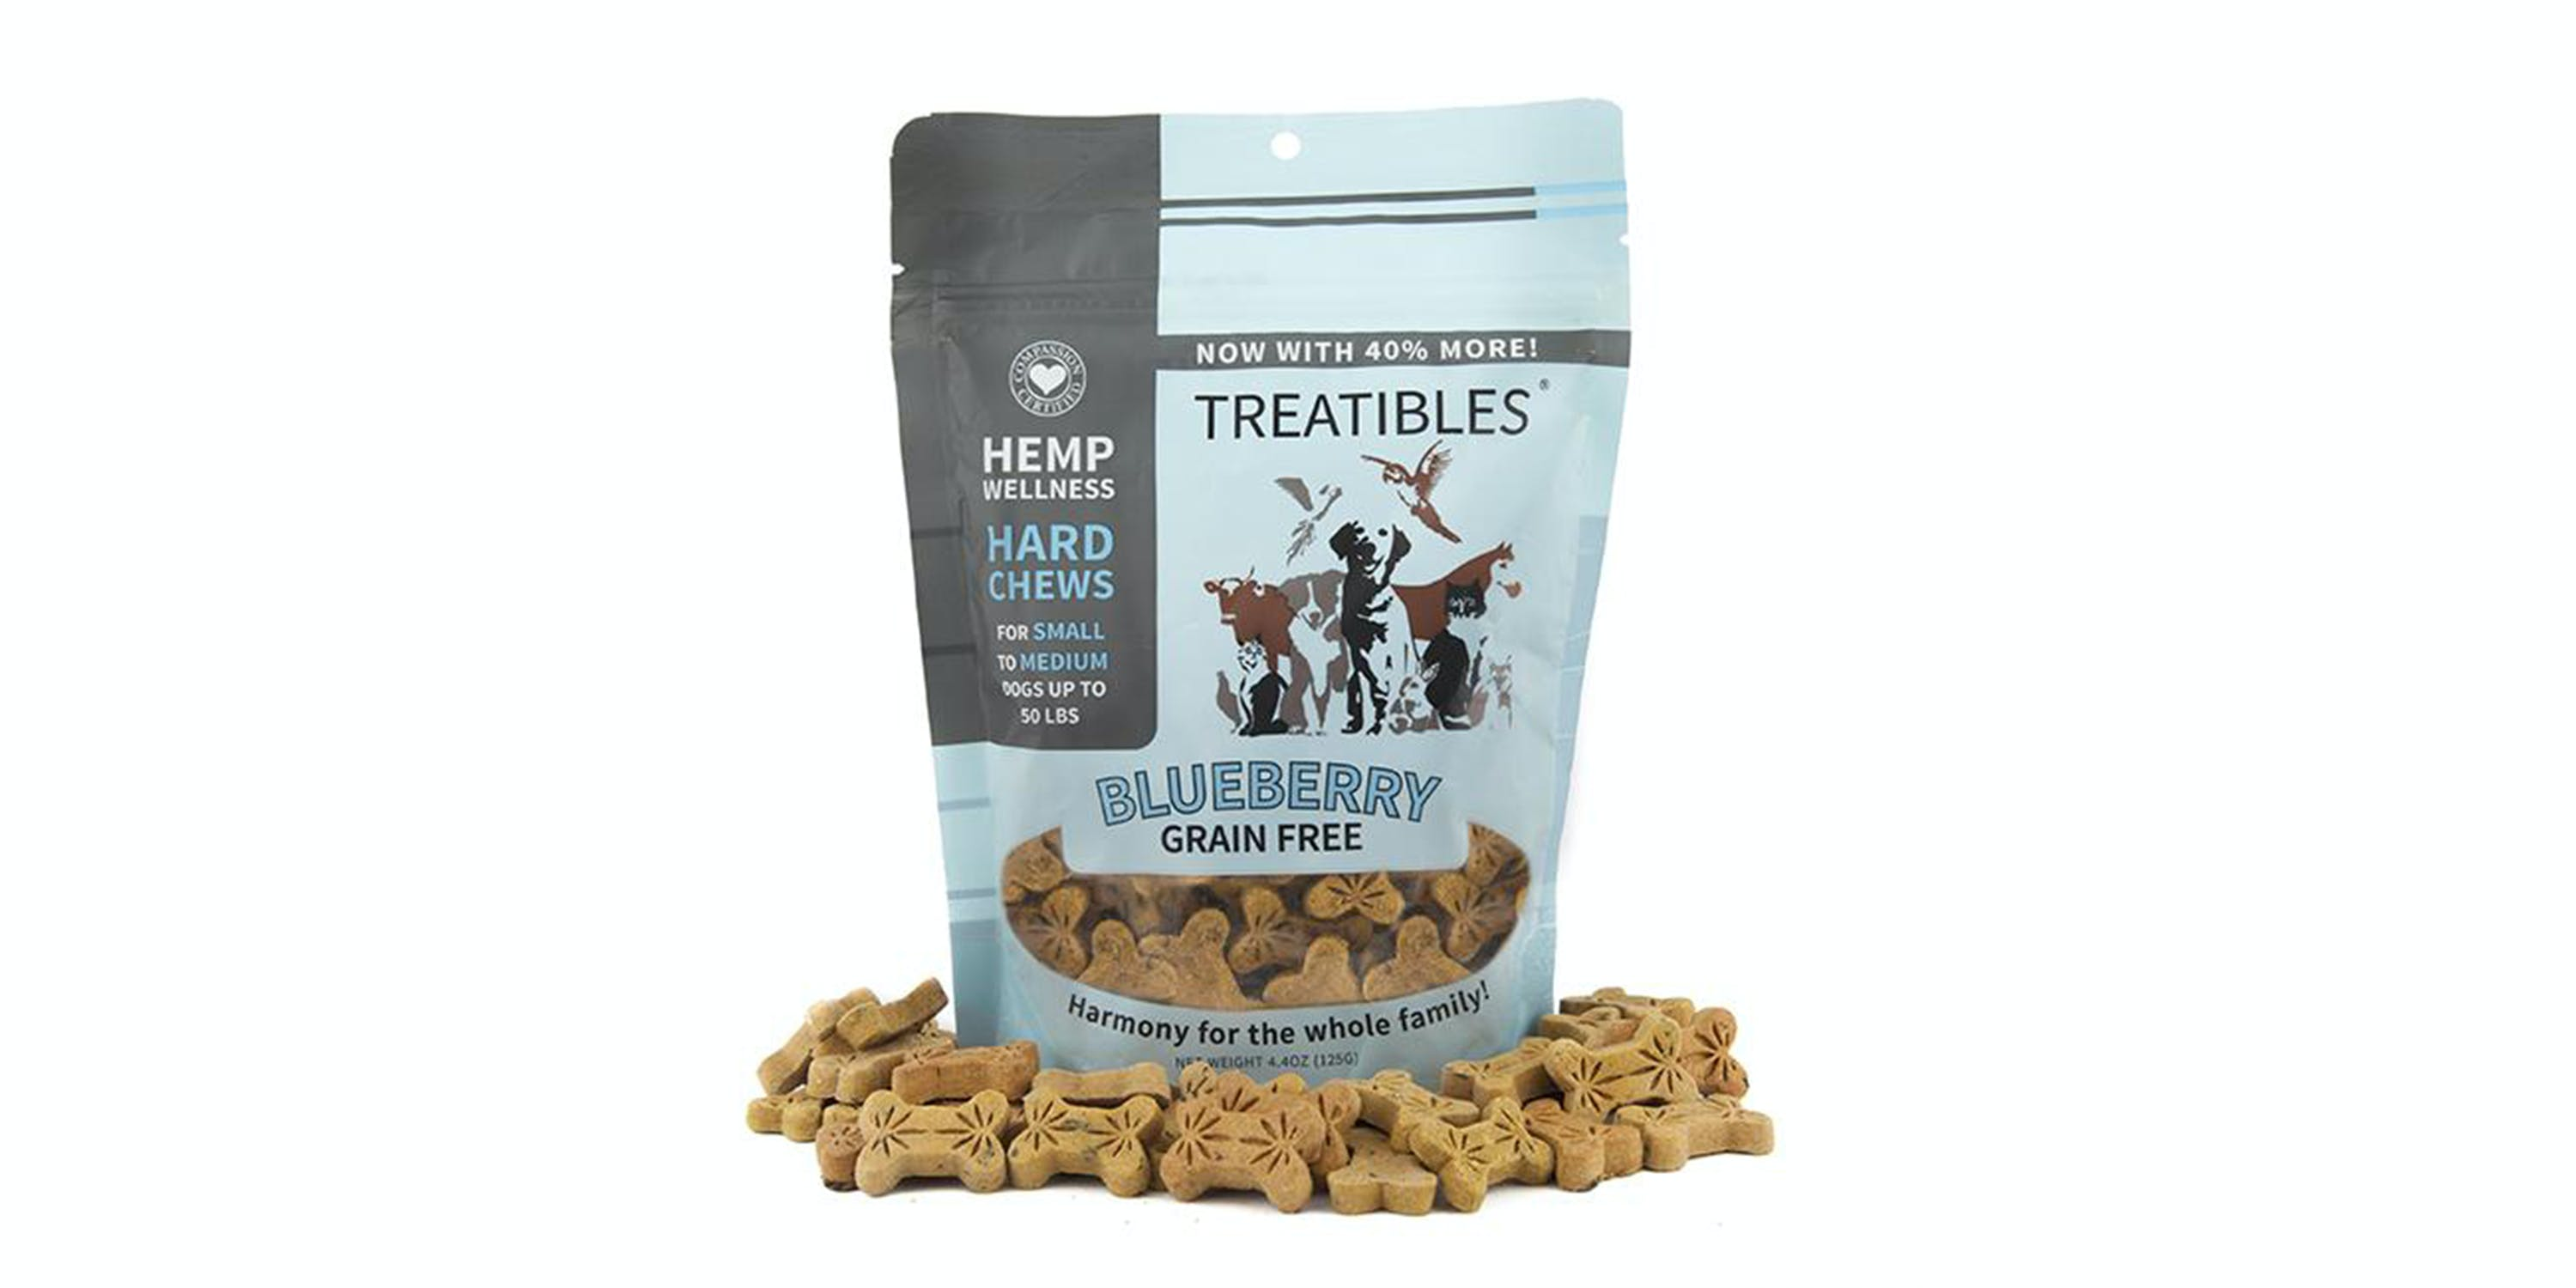 dog treats Voters, beware: We interviewed the Cannabis Candidate and hes full of it